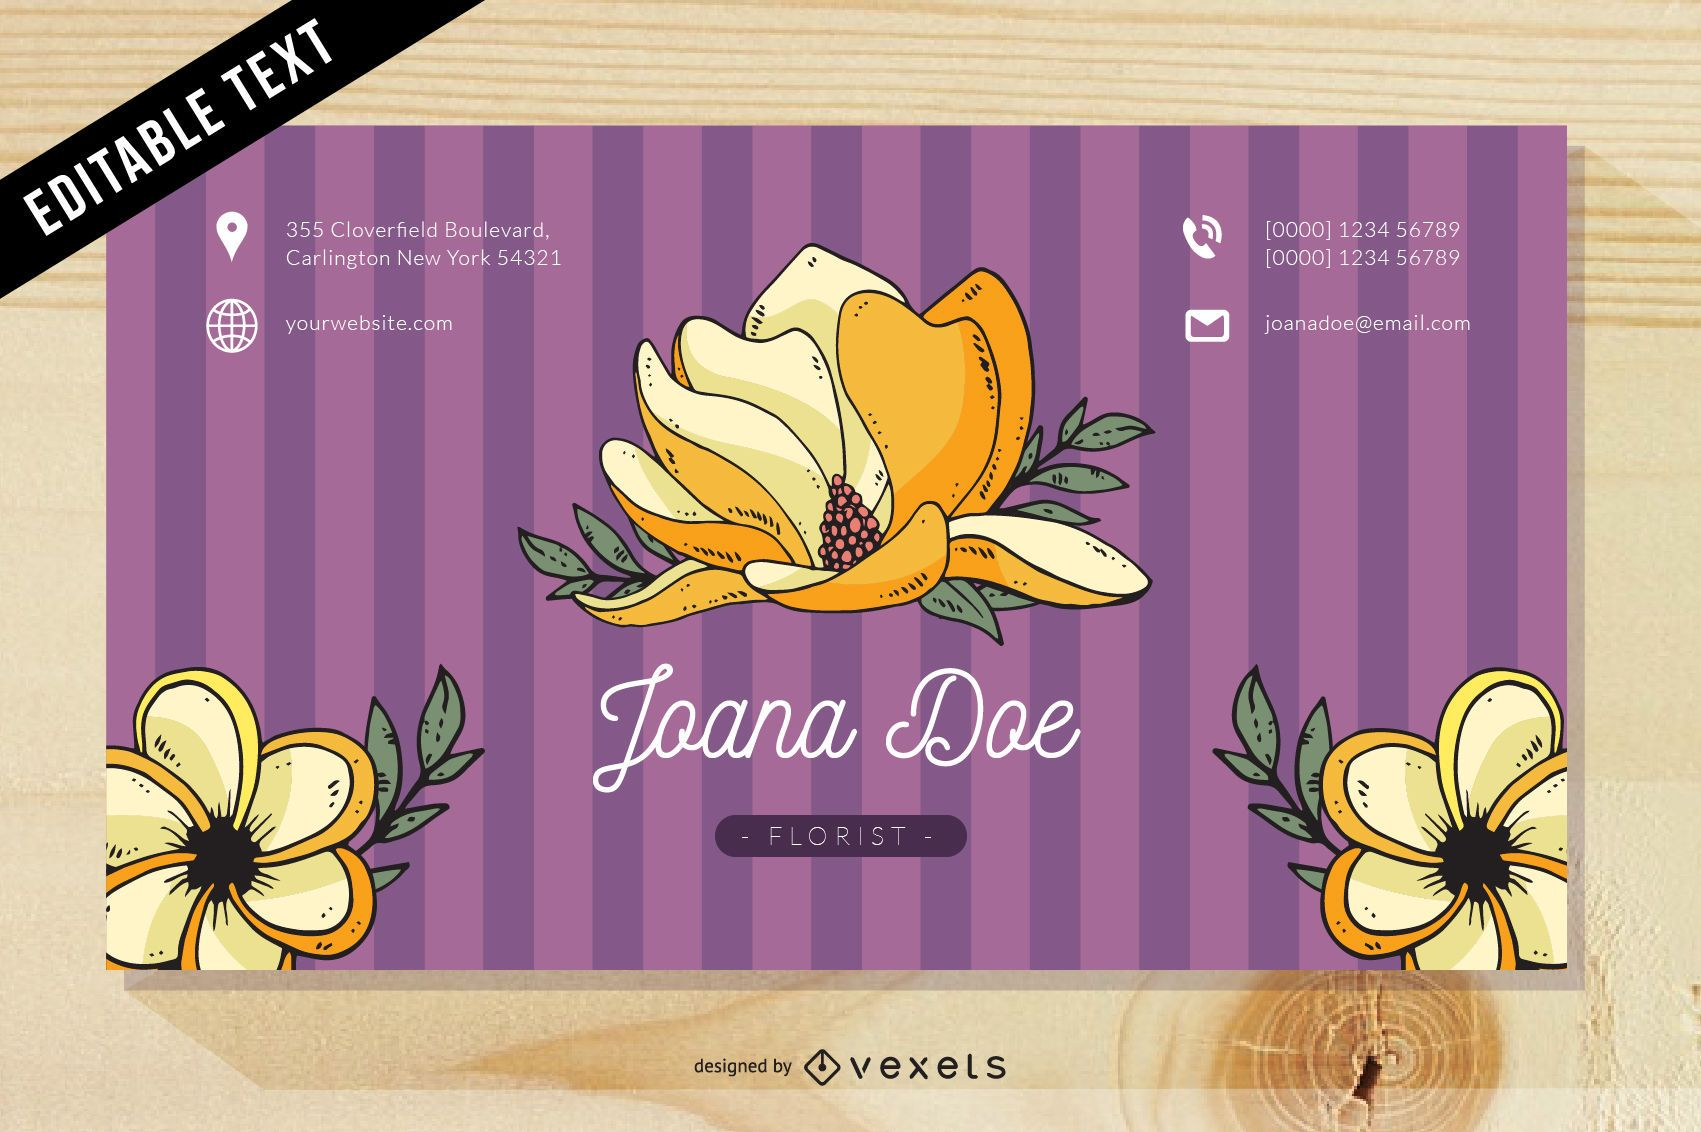 Pinkish floral business card template vector download pinkish floral business card template download large image 1701x1132px license image user accmission Choice Image